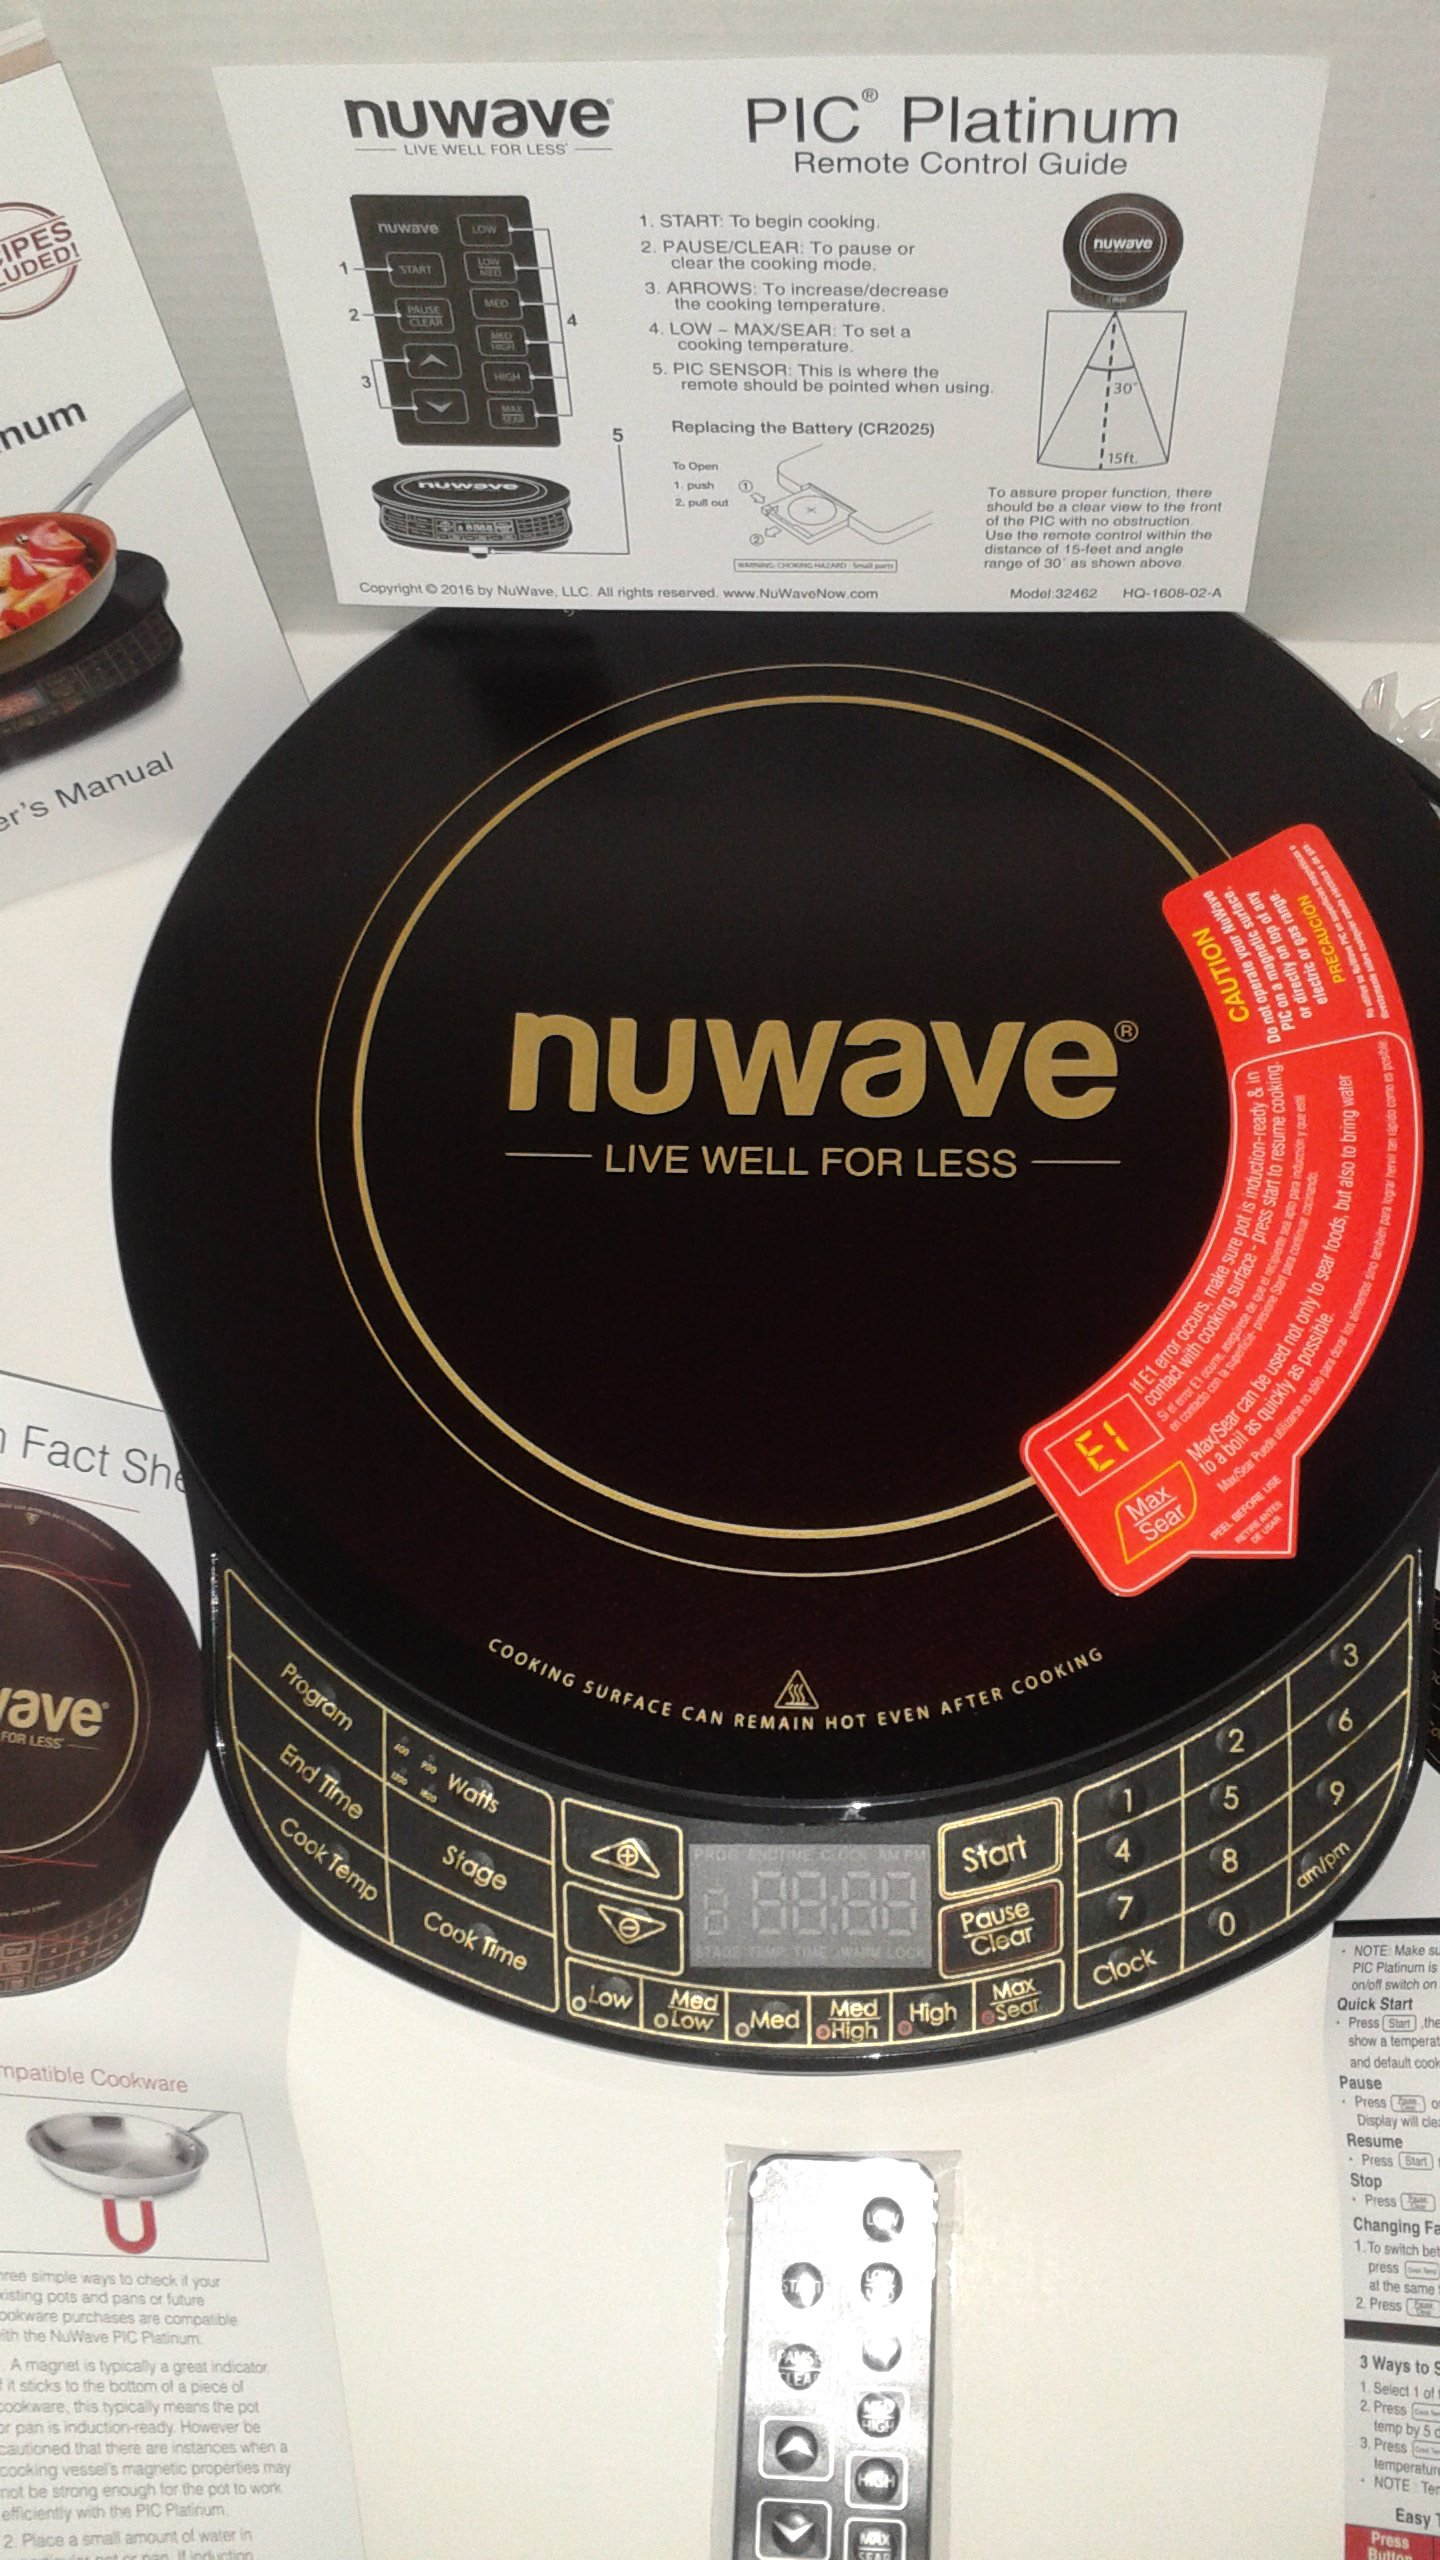 NuWave Platinum 30401 Precision Induction Cooktop, Black with Remote and Advanced Features for 2017 by NuWave (Image #2)